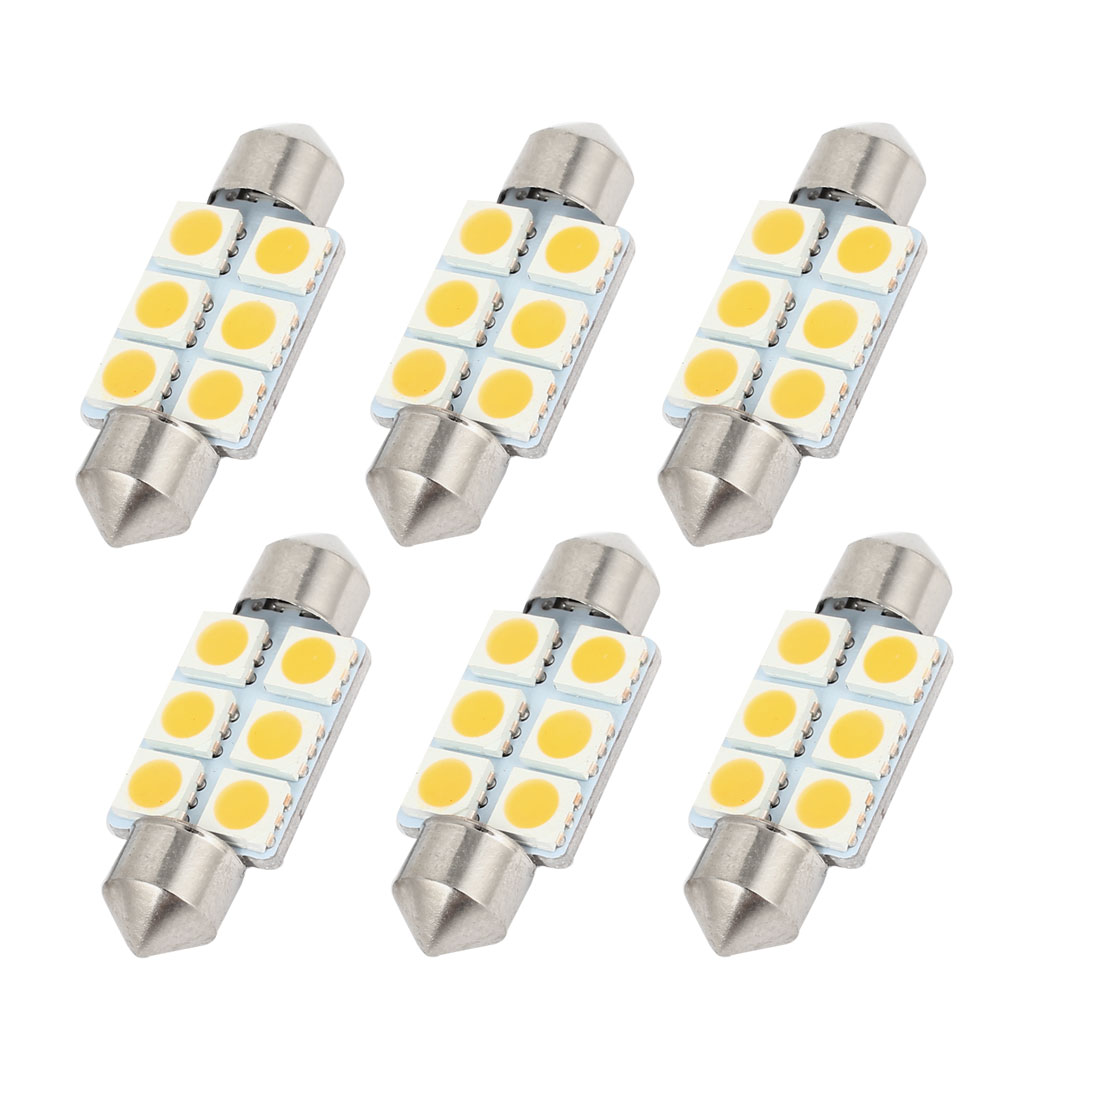 6pcs 36mm 6LED 5050 SMD Warm White Festoon Dome Light Bulbs DE3423 6461 Internal